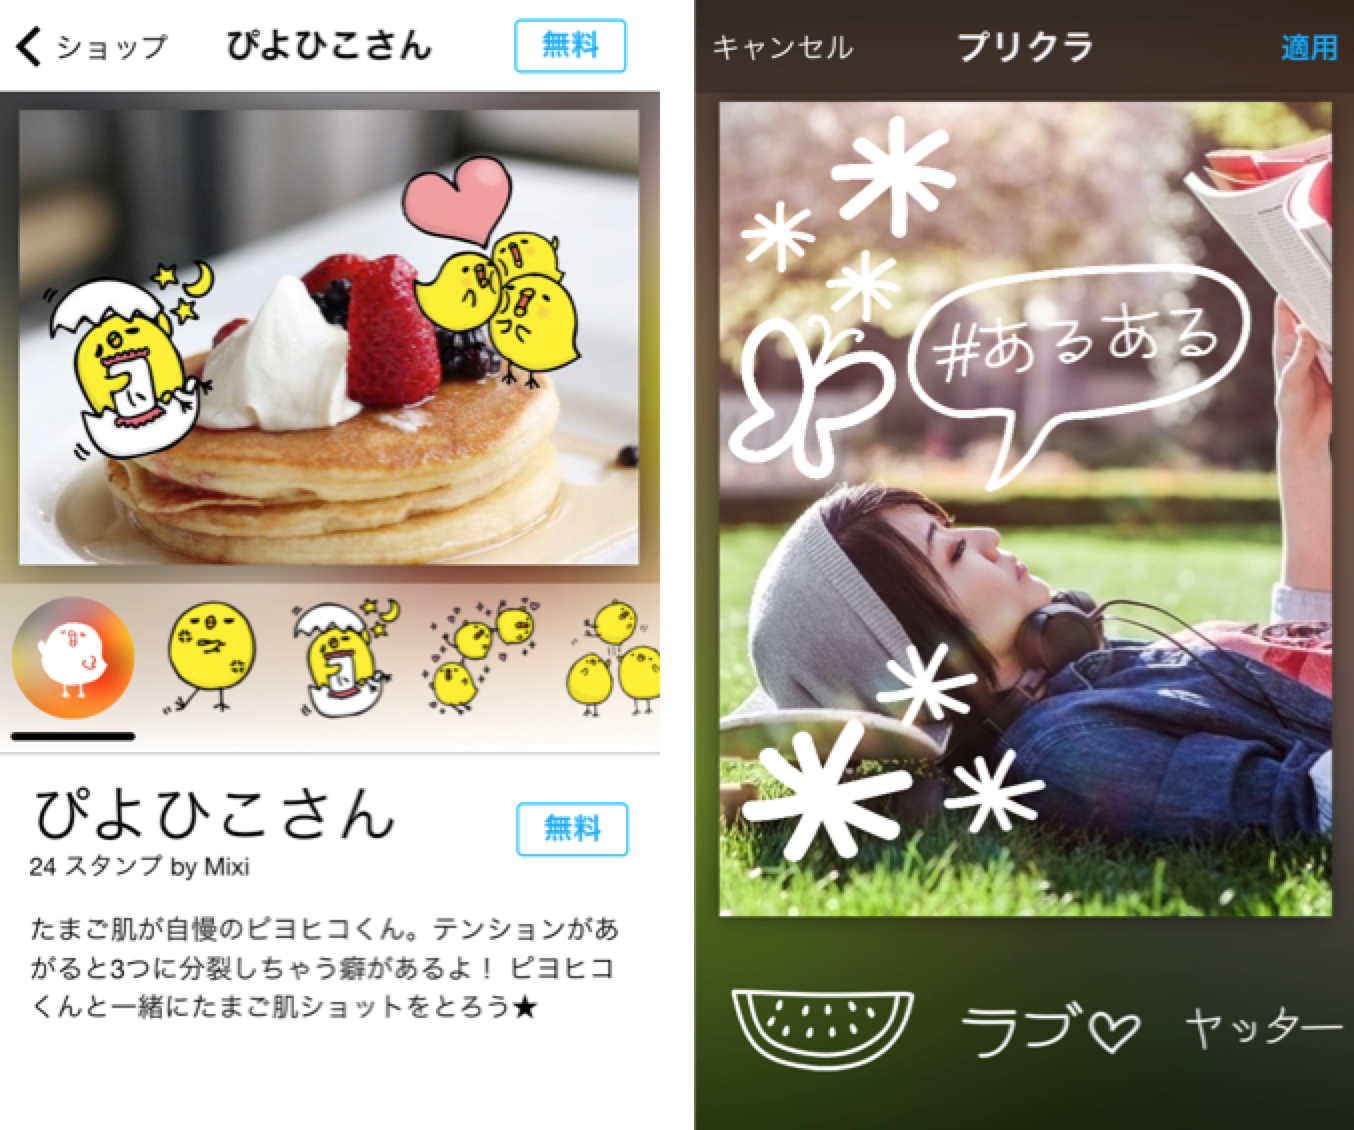 Kawaii stickers and Purikura packs, available in Photo Editor by Aviary (in Japan)